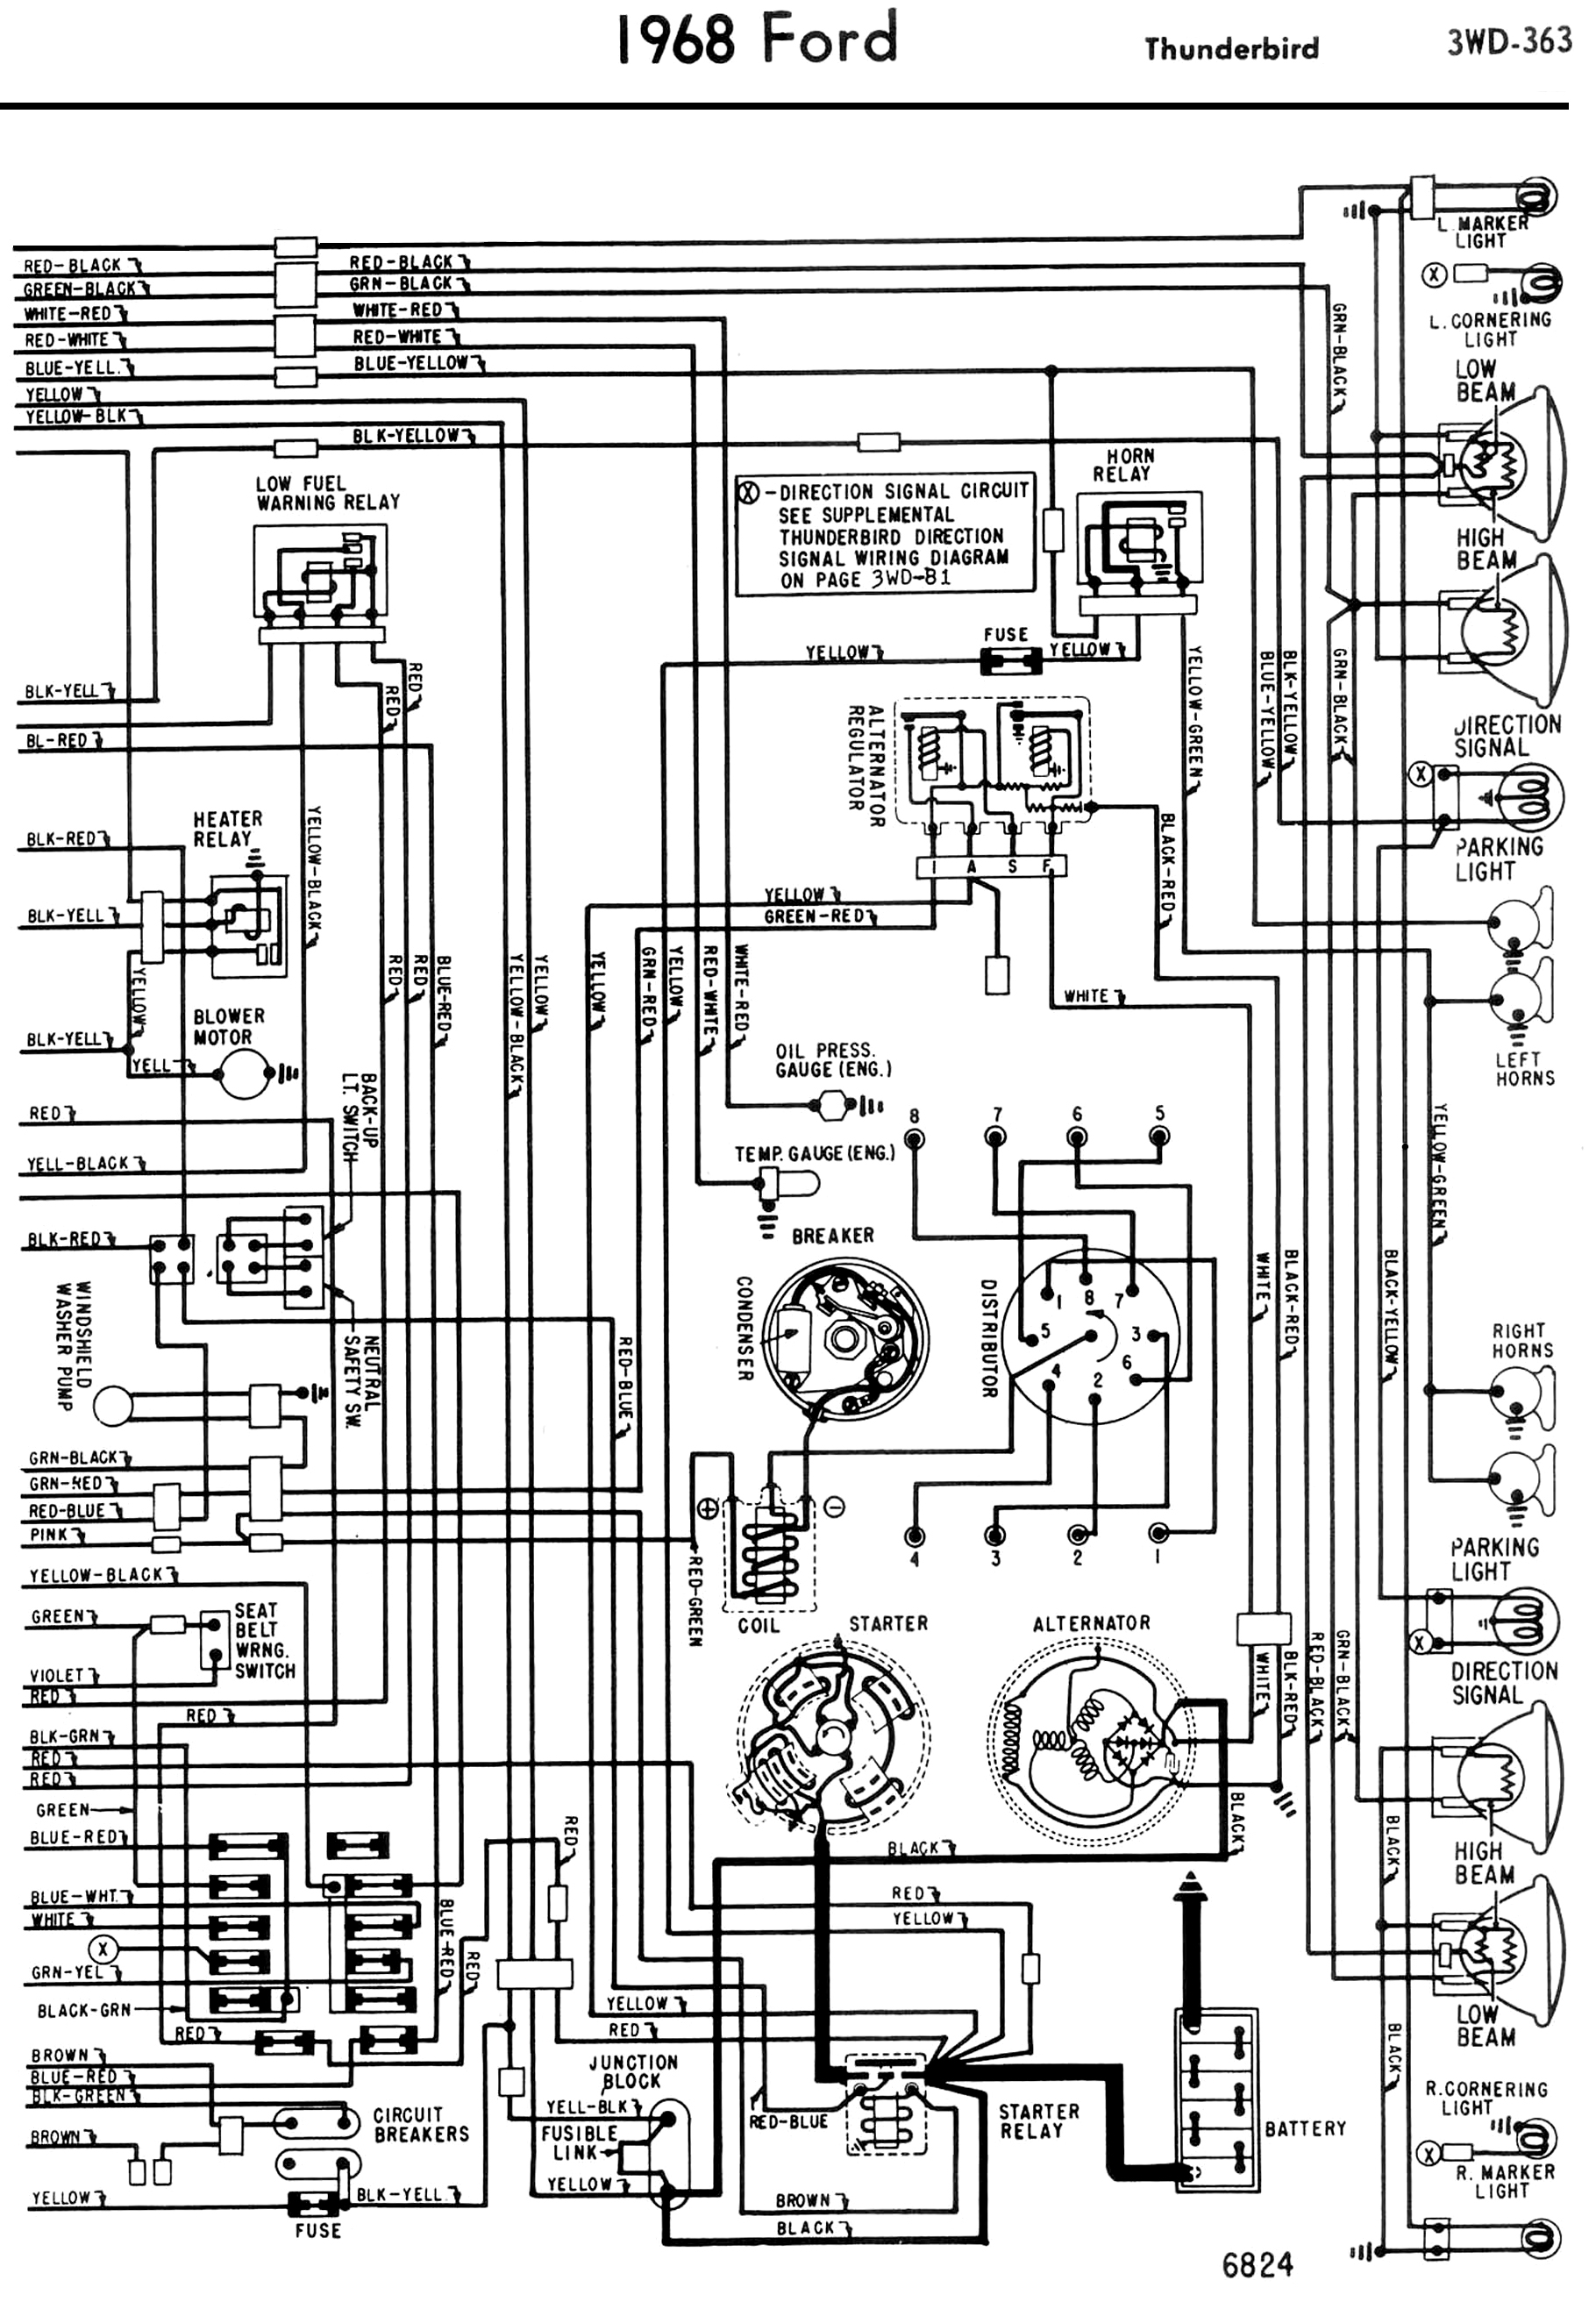 hight resolution of wiring diagram for 1986 ford thunderbird wiring diagram expert 1986 ford thunderbird wiring diagram wiring diagram